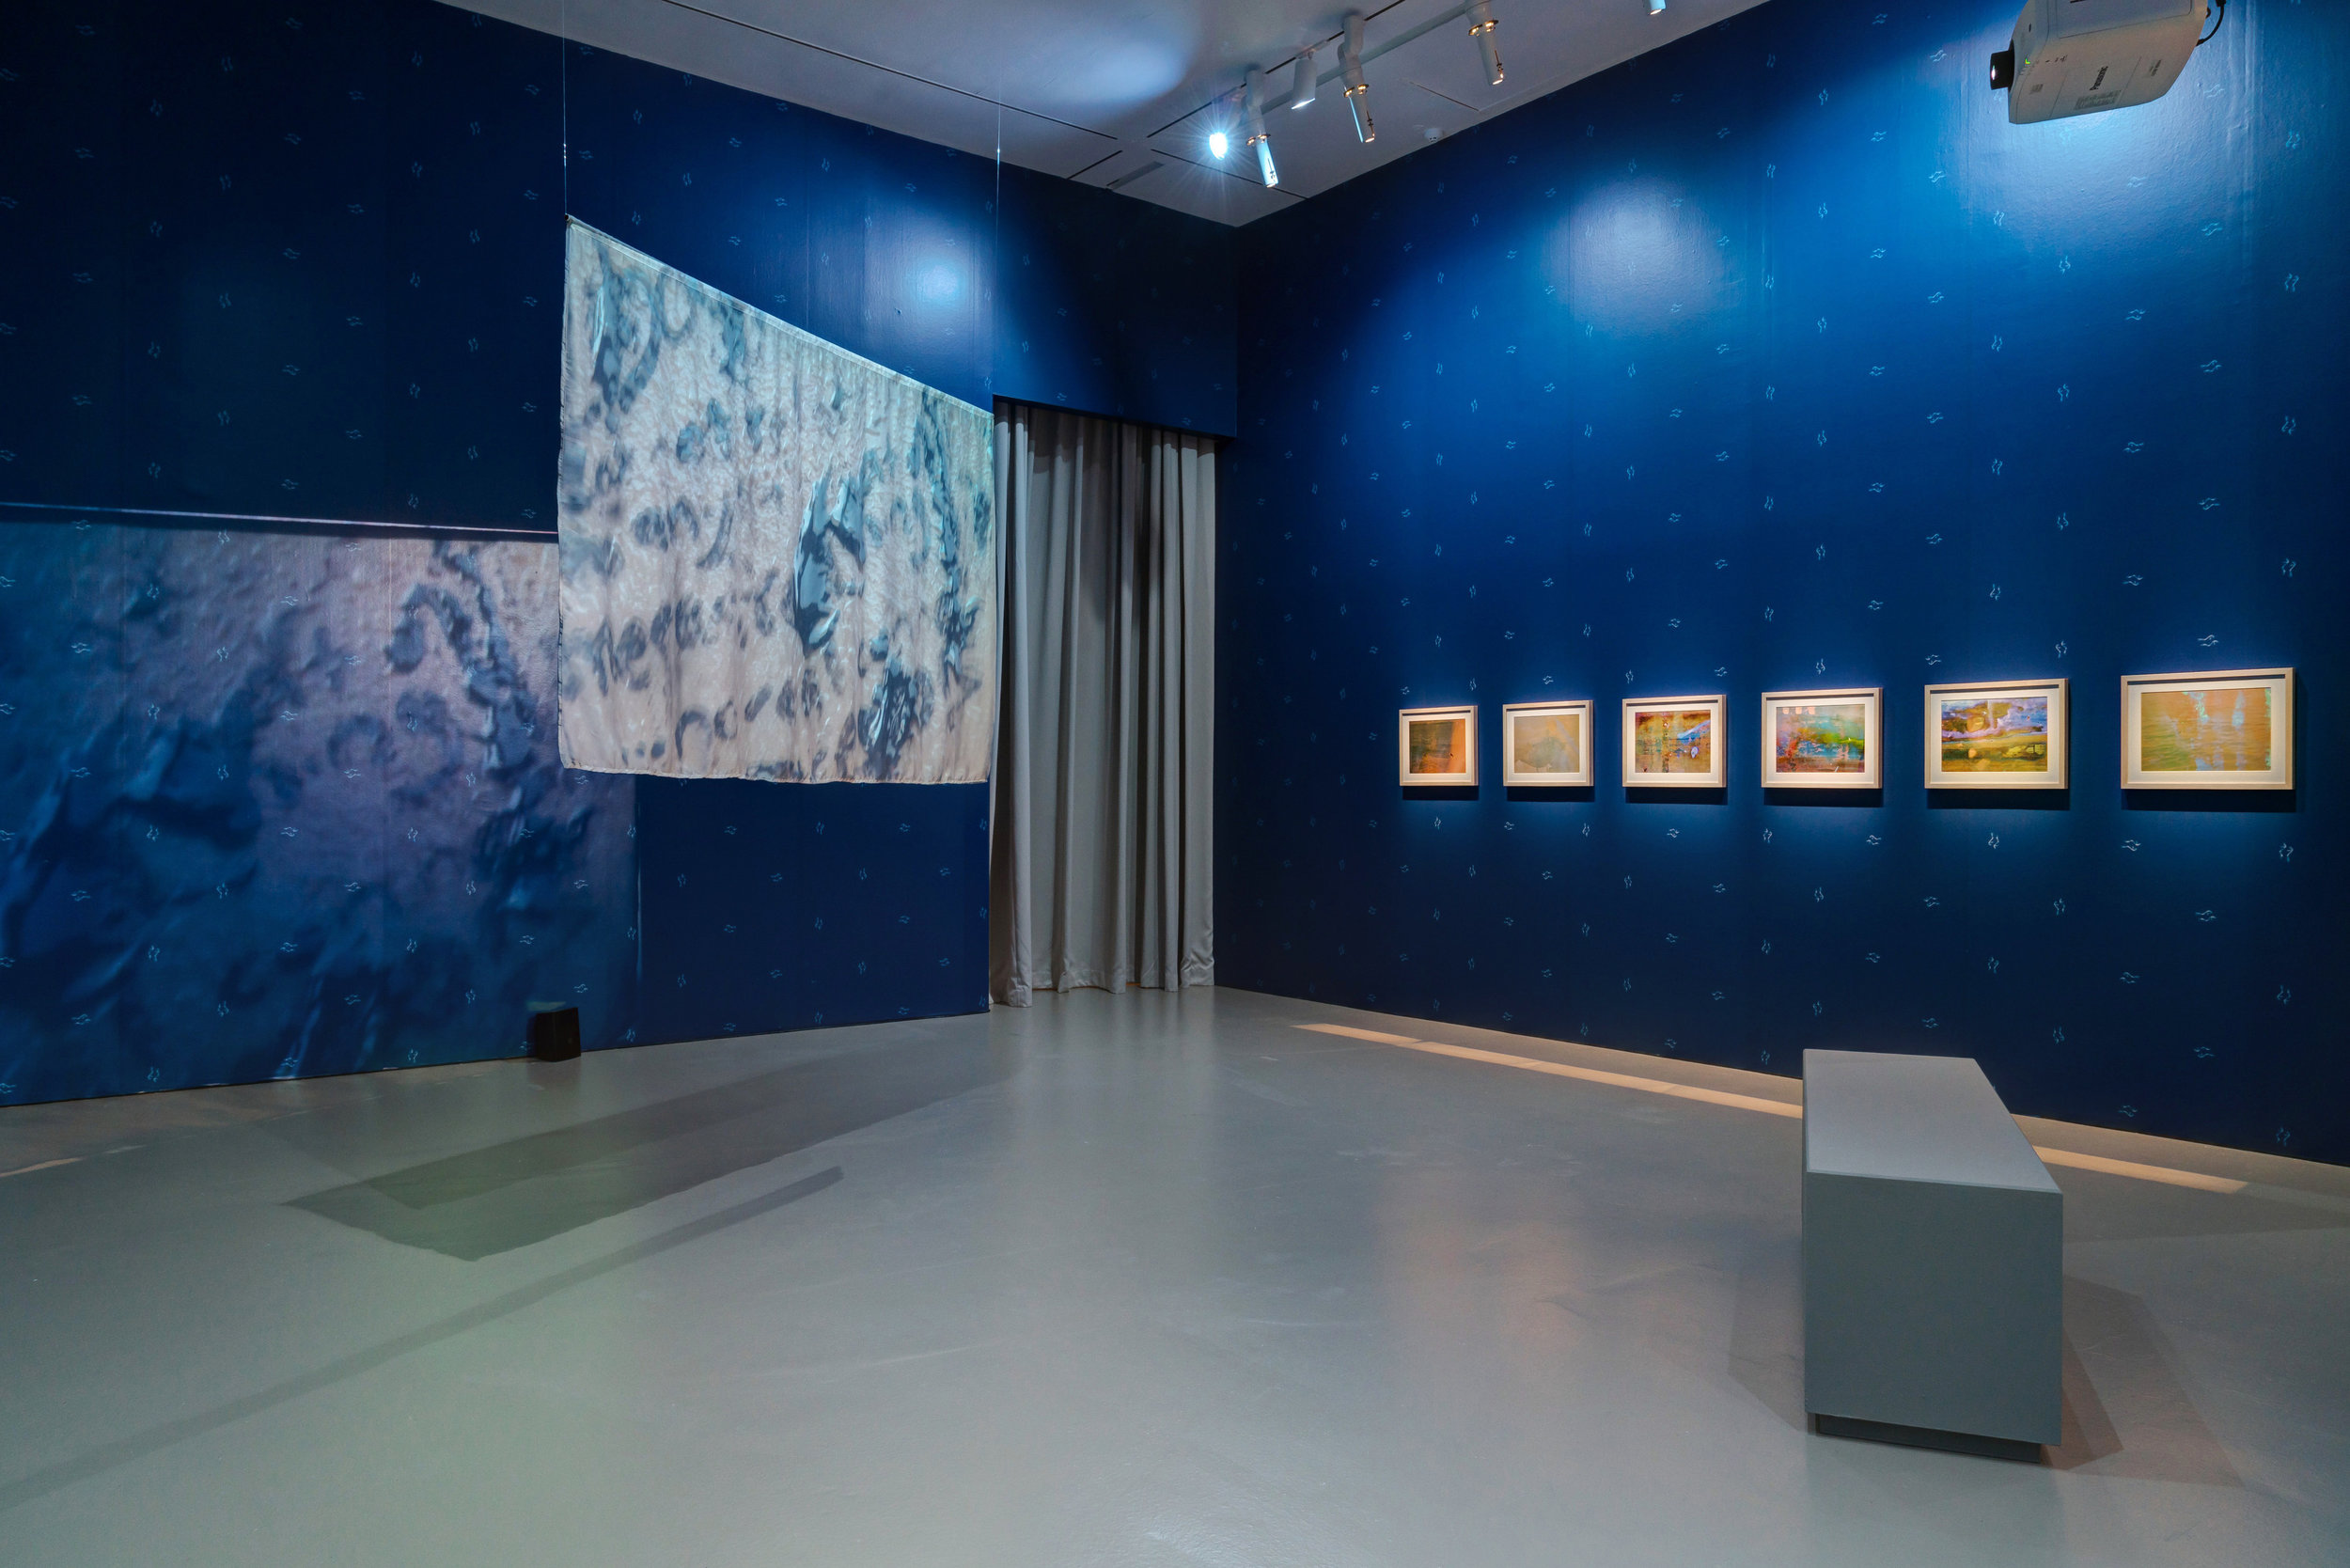 bekas  and  the sons and daughters of hungry ghosts  (L-R), ila 2019, Installation View at NTU Centre for Contemporary Art Singapore  Credit: NTU Centre for Contemporary Art Singapore